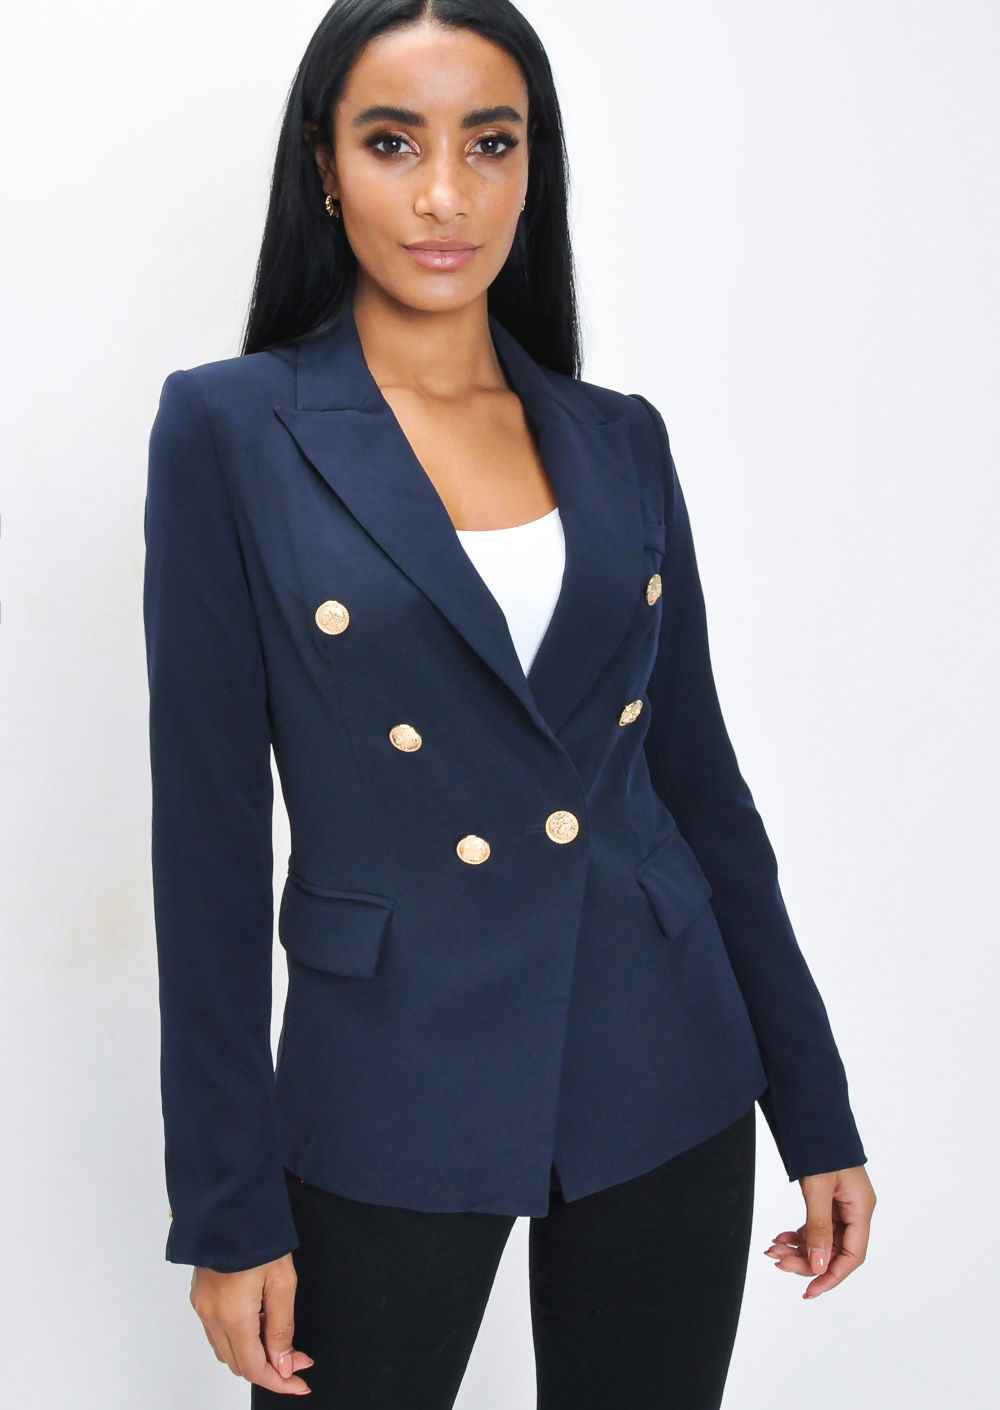 military-style-tailored-blazer-jacket-navy-blue-salma-lily-lulu-fashion-1.jpg